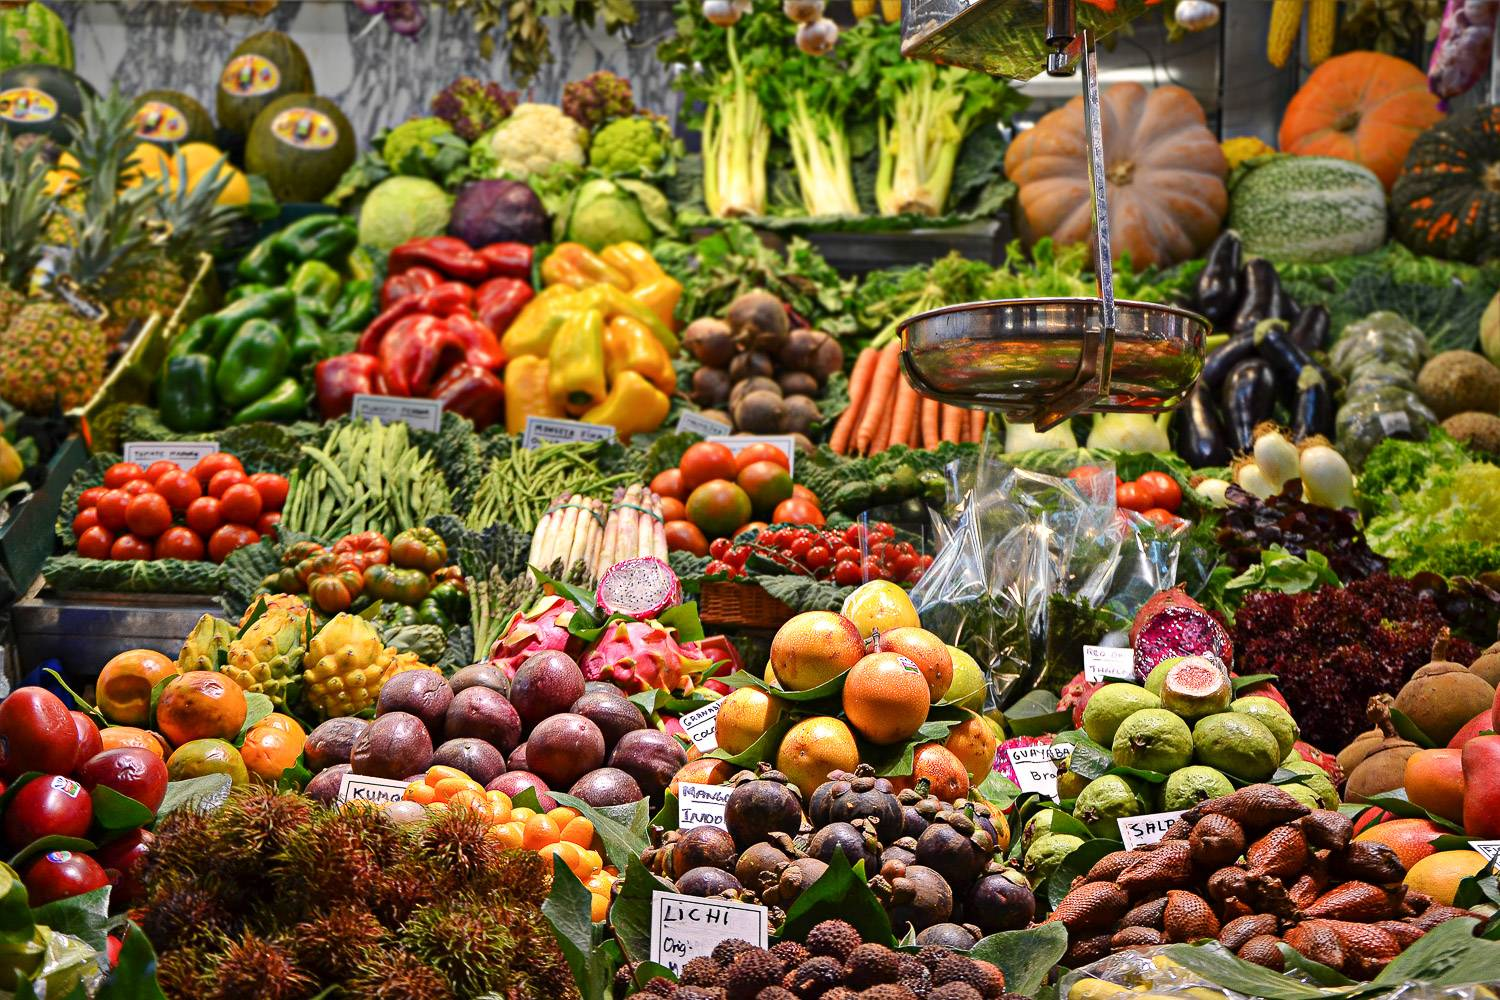 Image of fresh fruits and vegetables on display in a farmers market, ready for sale.